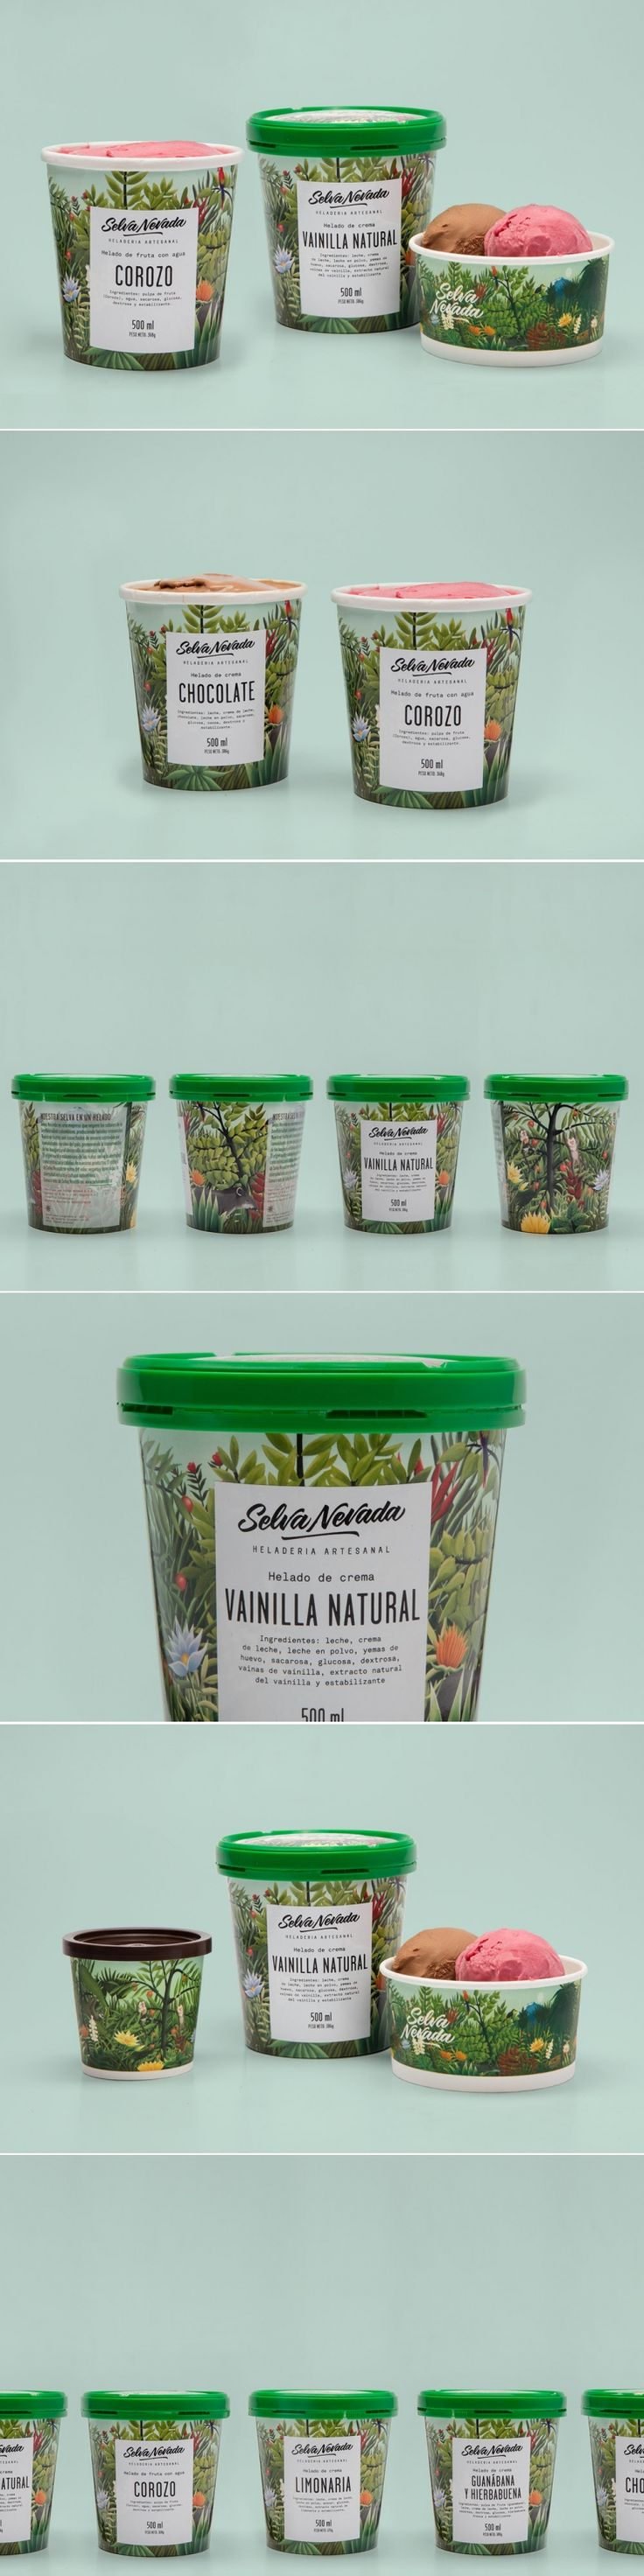 We Love This Botanical Inspired Ice Cream — The Dieline - Branding & Packaging Design